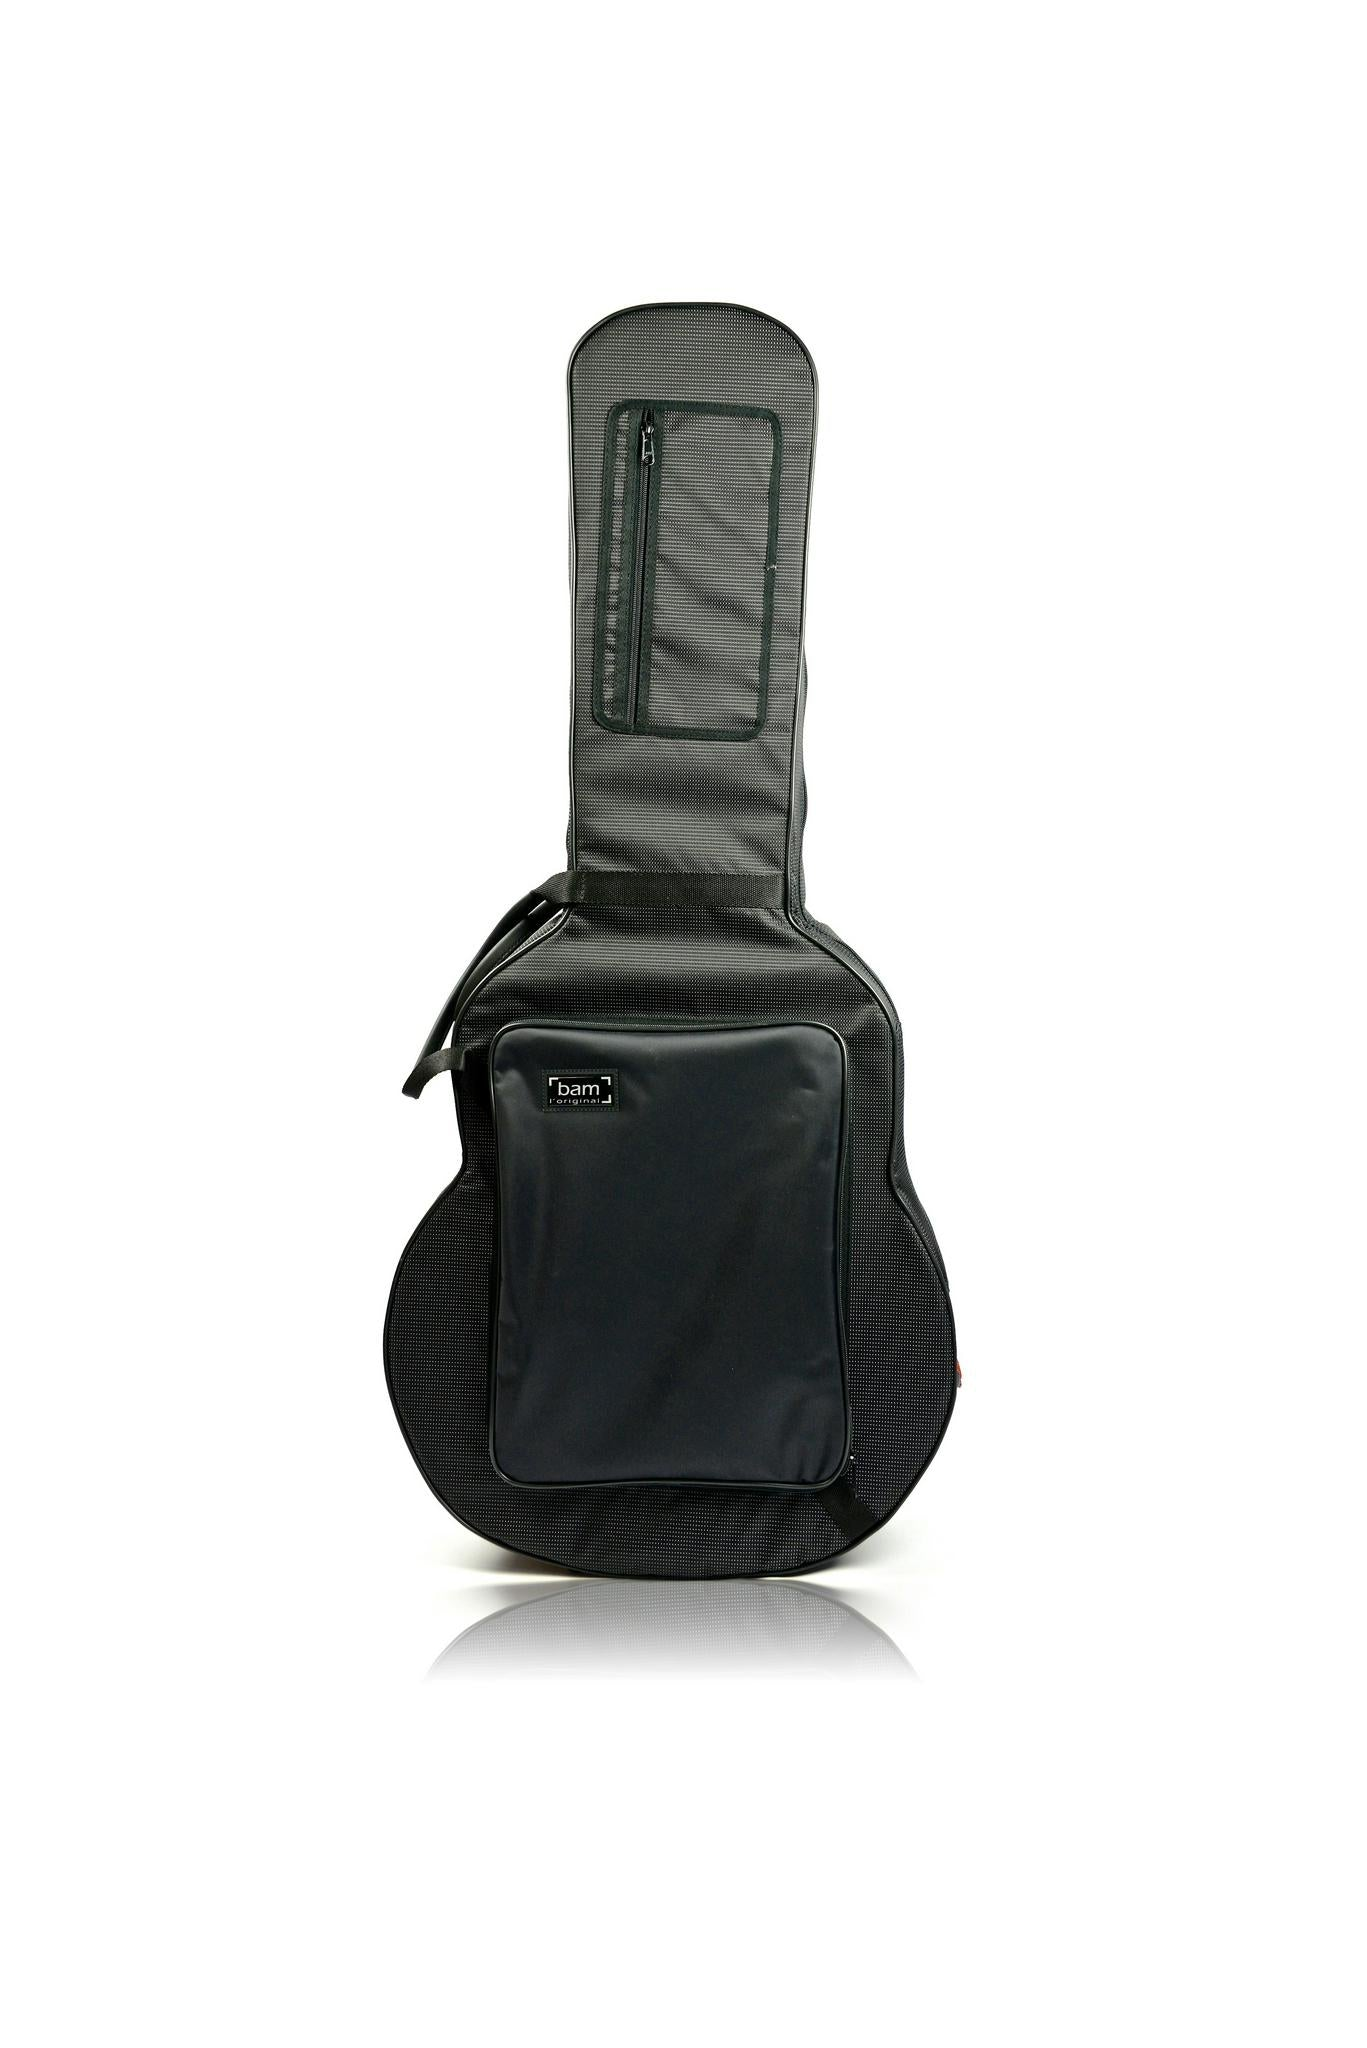 BAM FLIGHT Guitar Case Cover